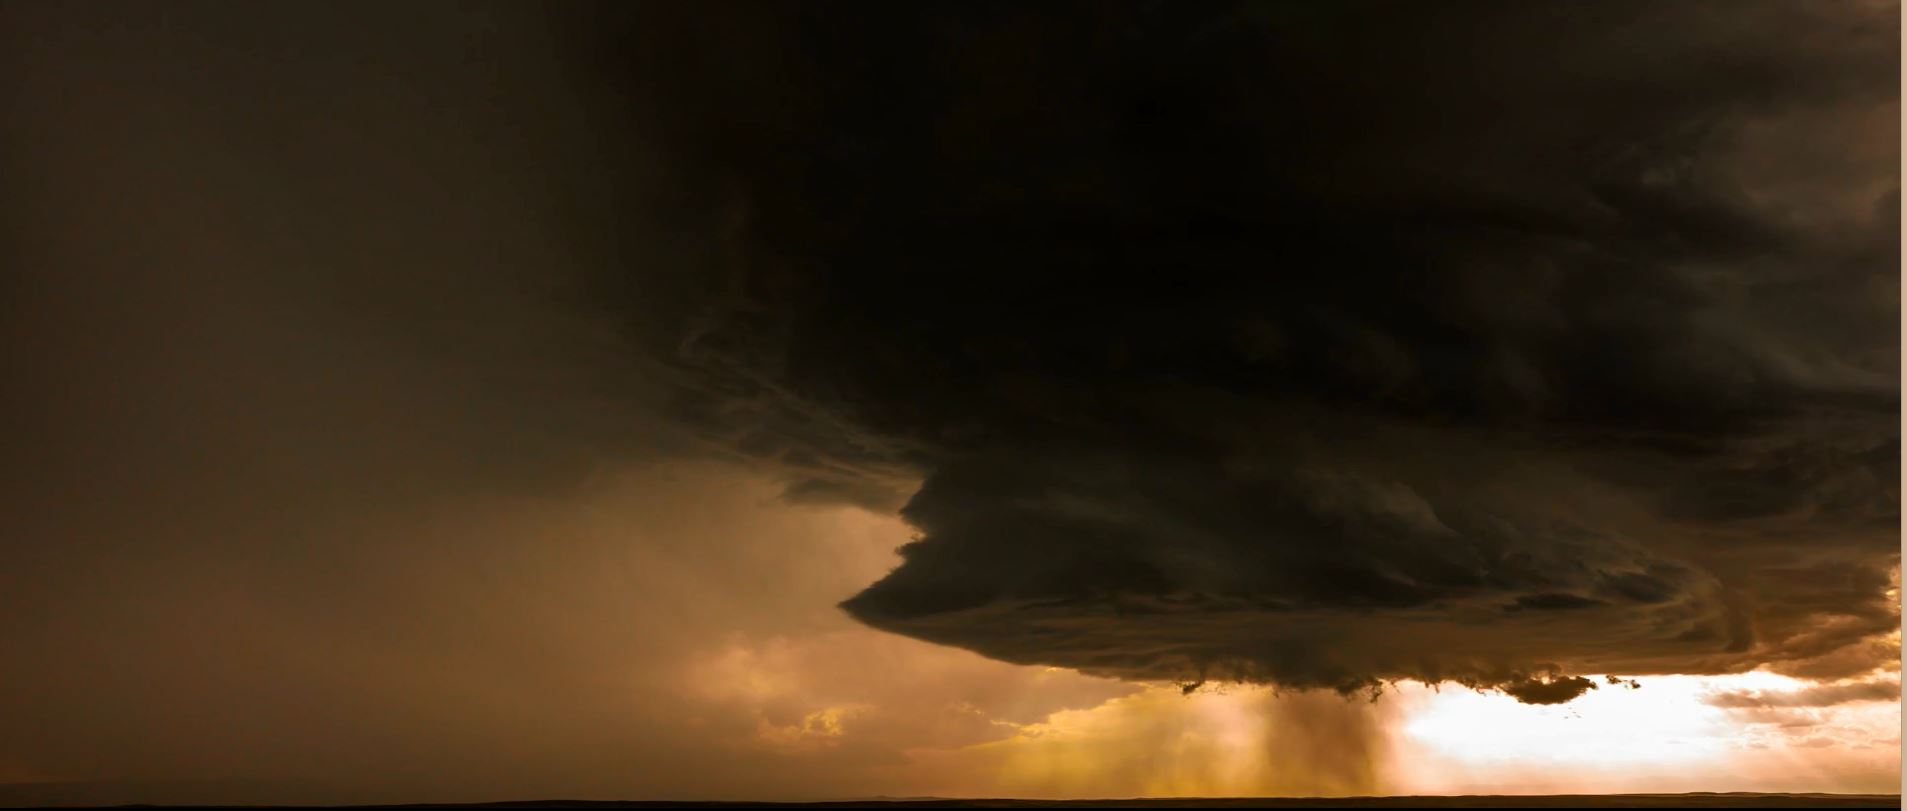 Wyoming Wildscapes a storm is coming 5 - Be There Before